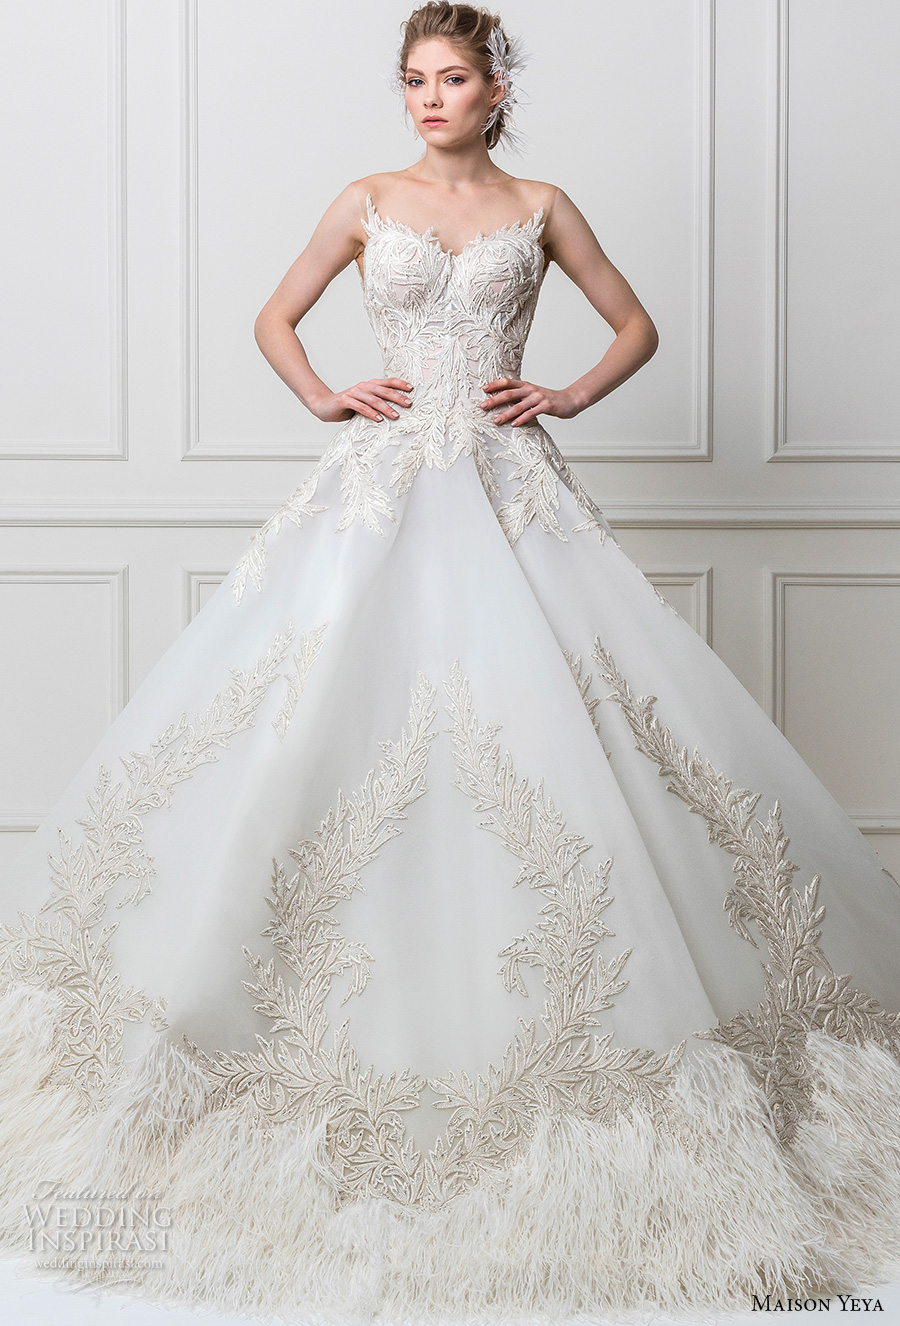 maison yeya 2017 bridal strapless sweetheart neckline heavily embellished bodice princess glamorous ball gown wedding dress open v back royal train (10) mv